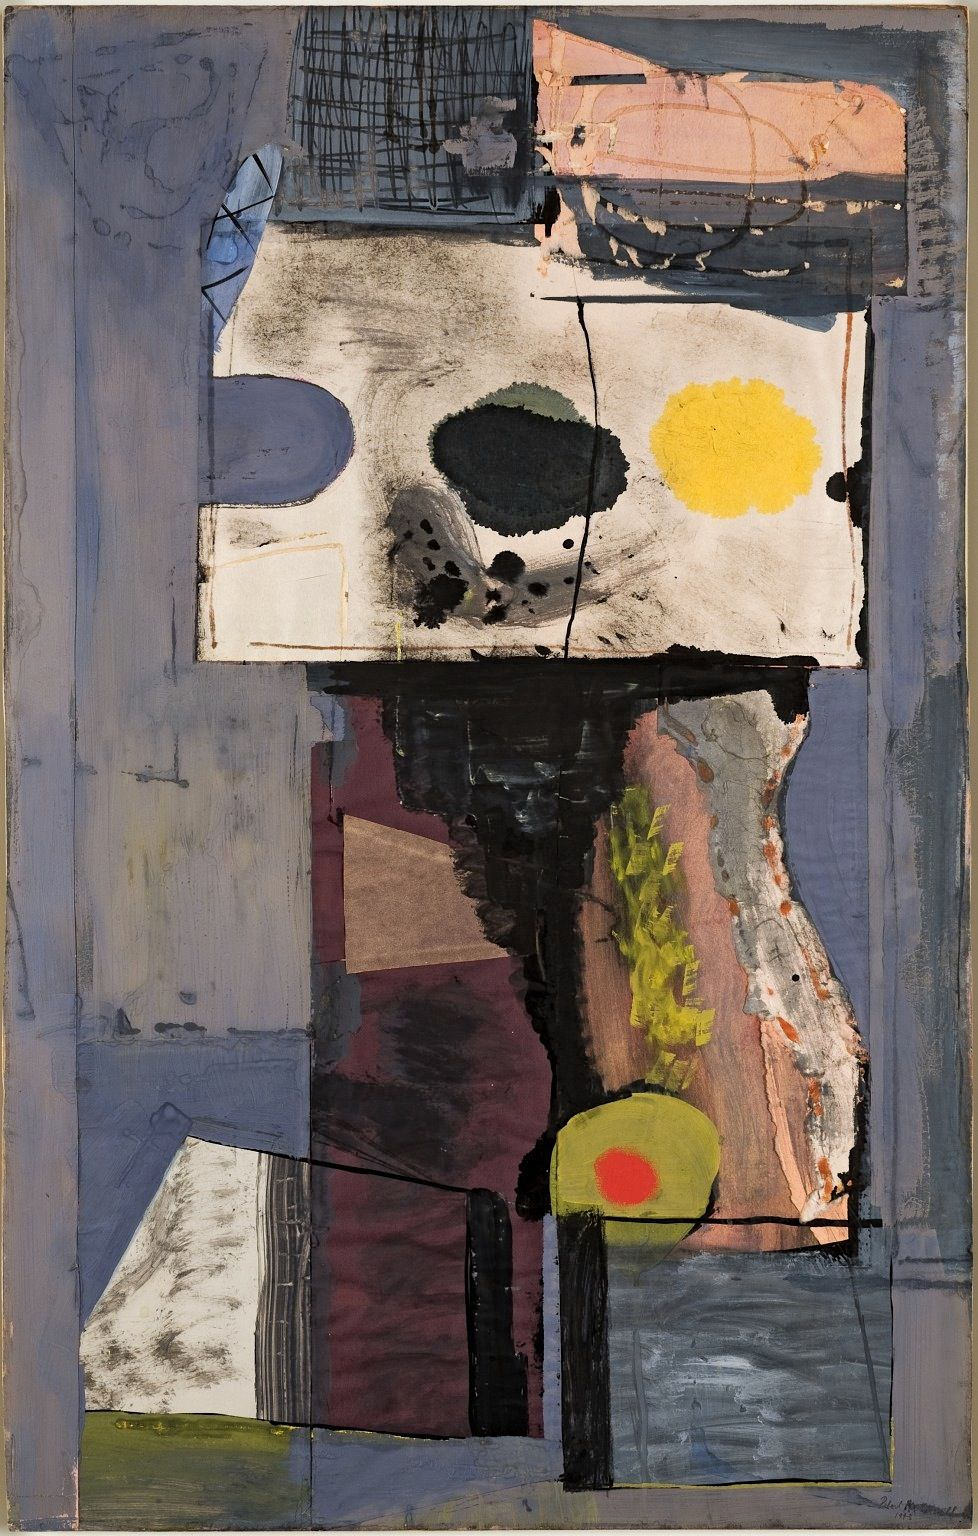 Robert Motherwell - Personage (Autoportrait), 1943. Gouache, ink, and Japanese paper collage on paperboard.